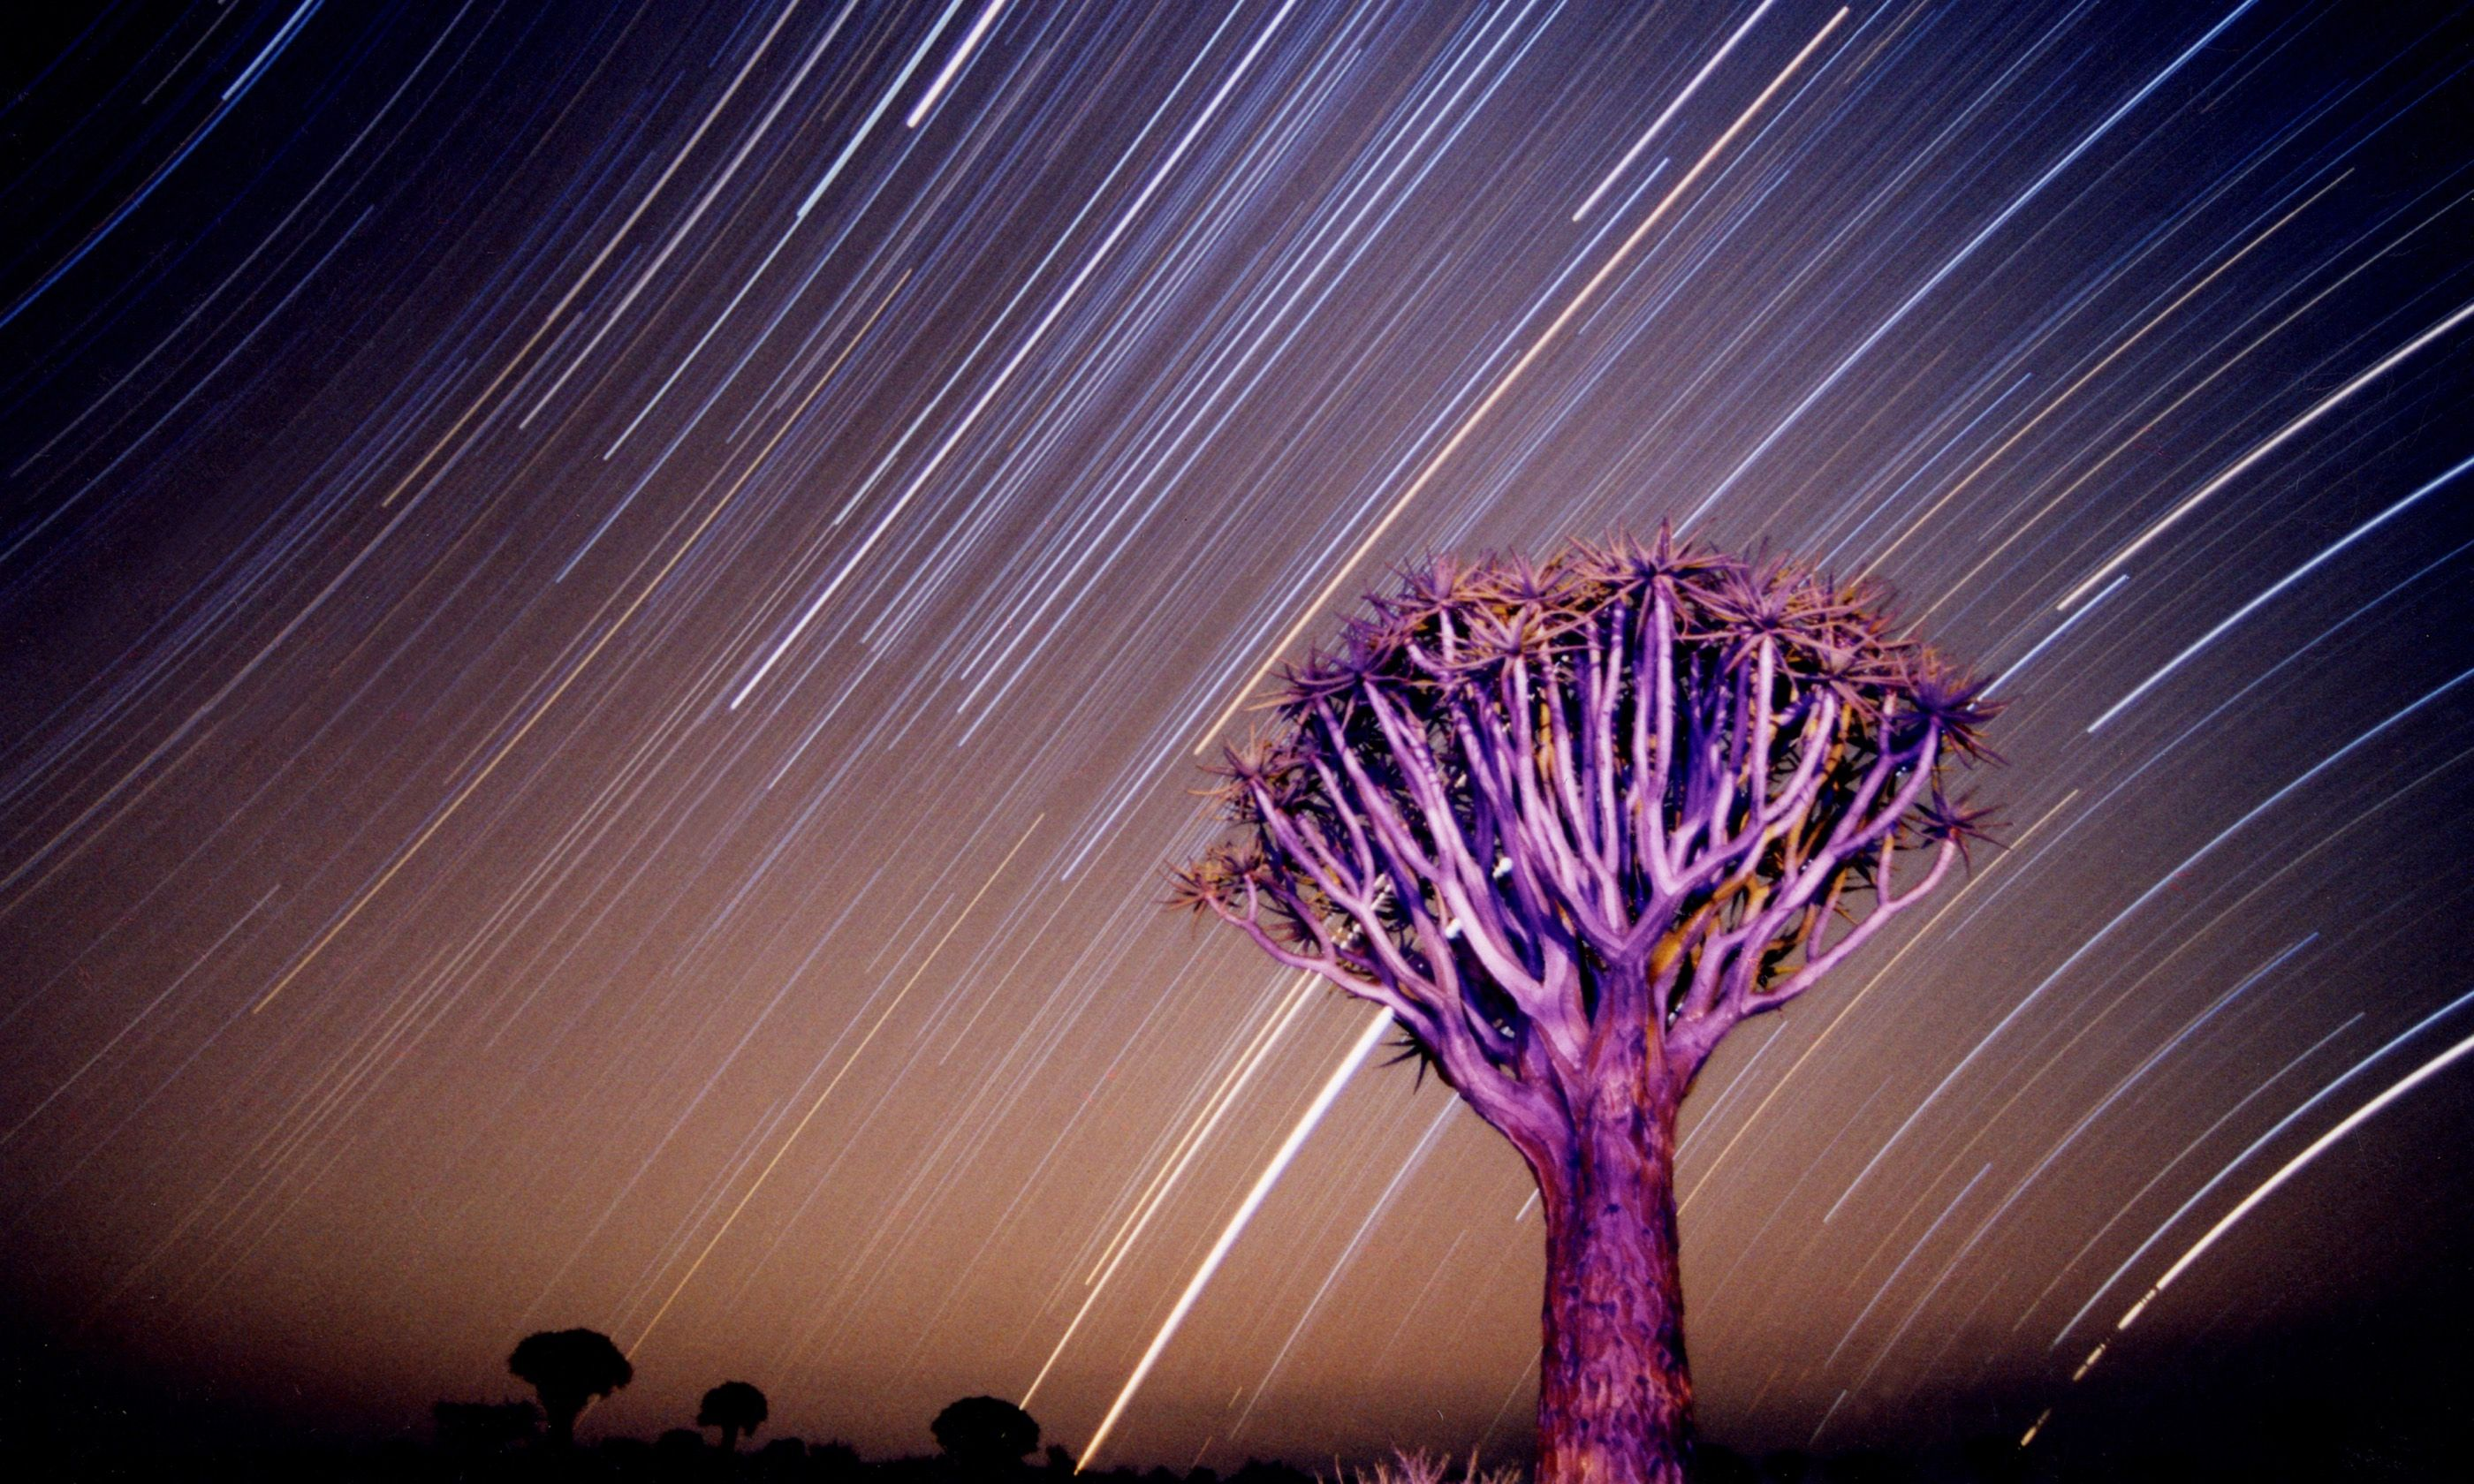 Quiver Tree under night sky in Namibia (Dreamstime)